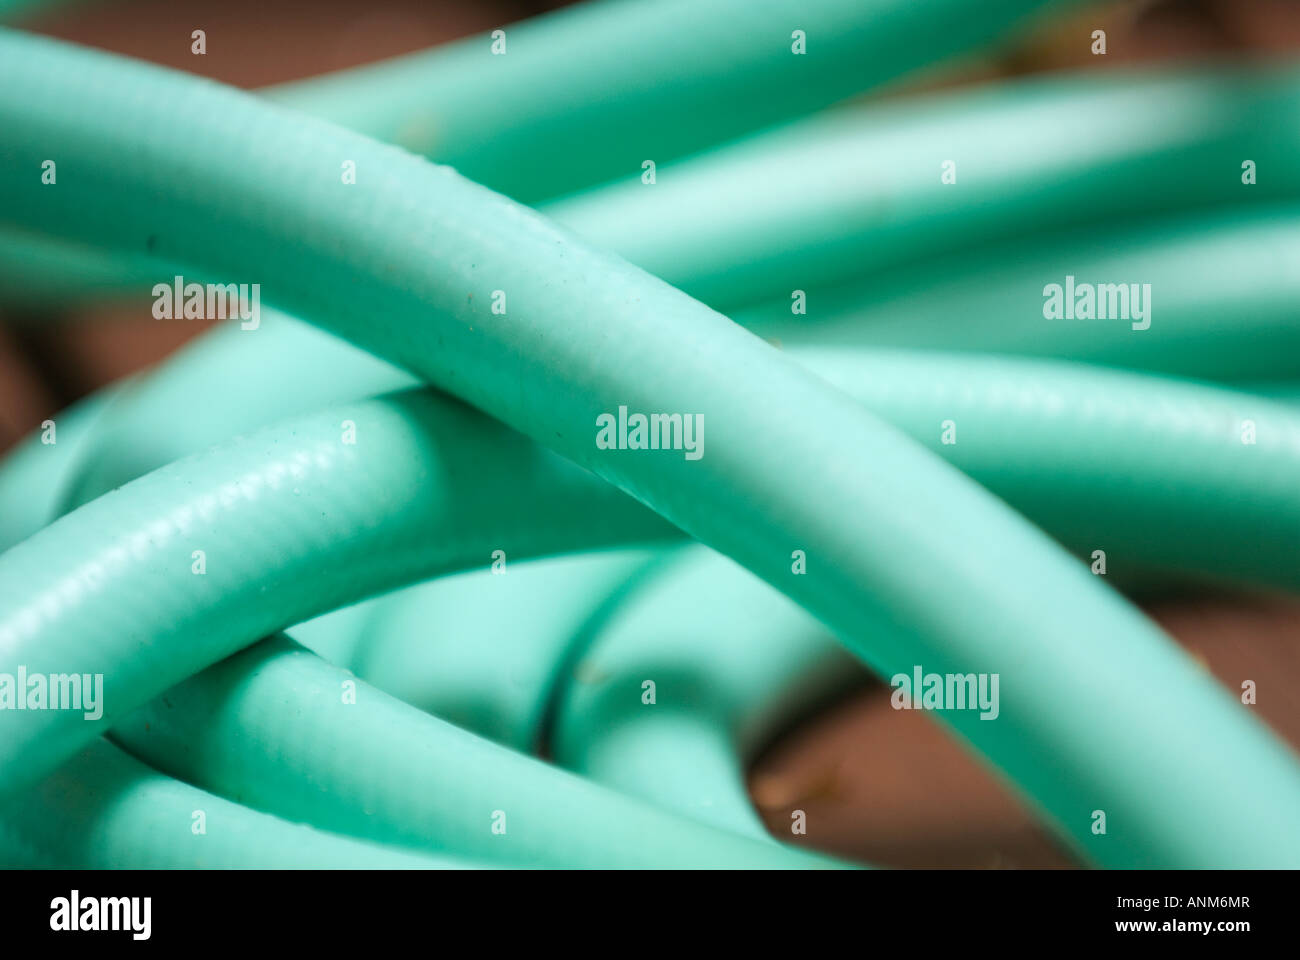 Coiled Garden Hose Background Soft Focus Still Life   Stock Image